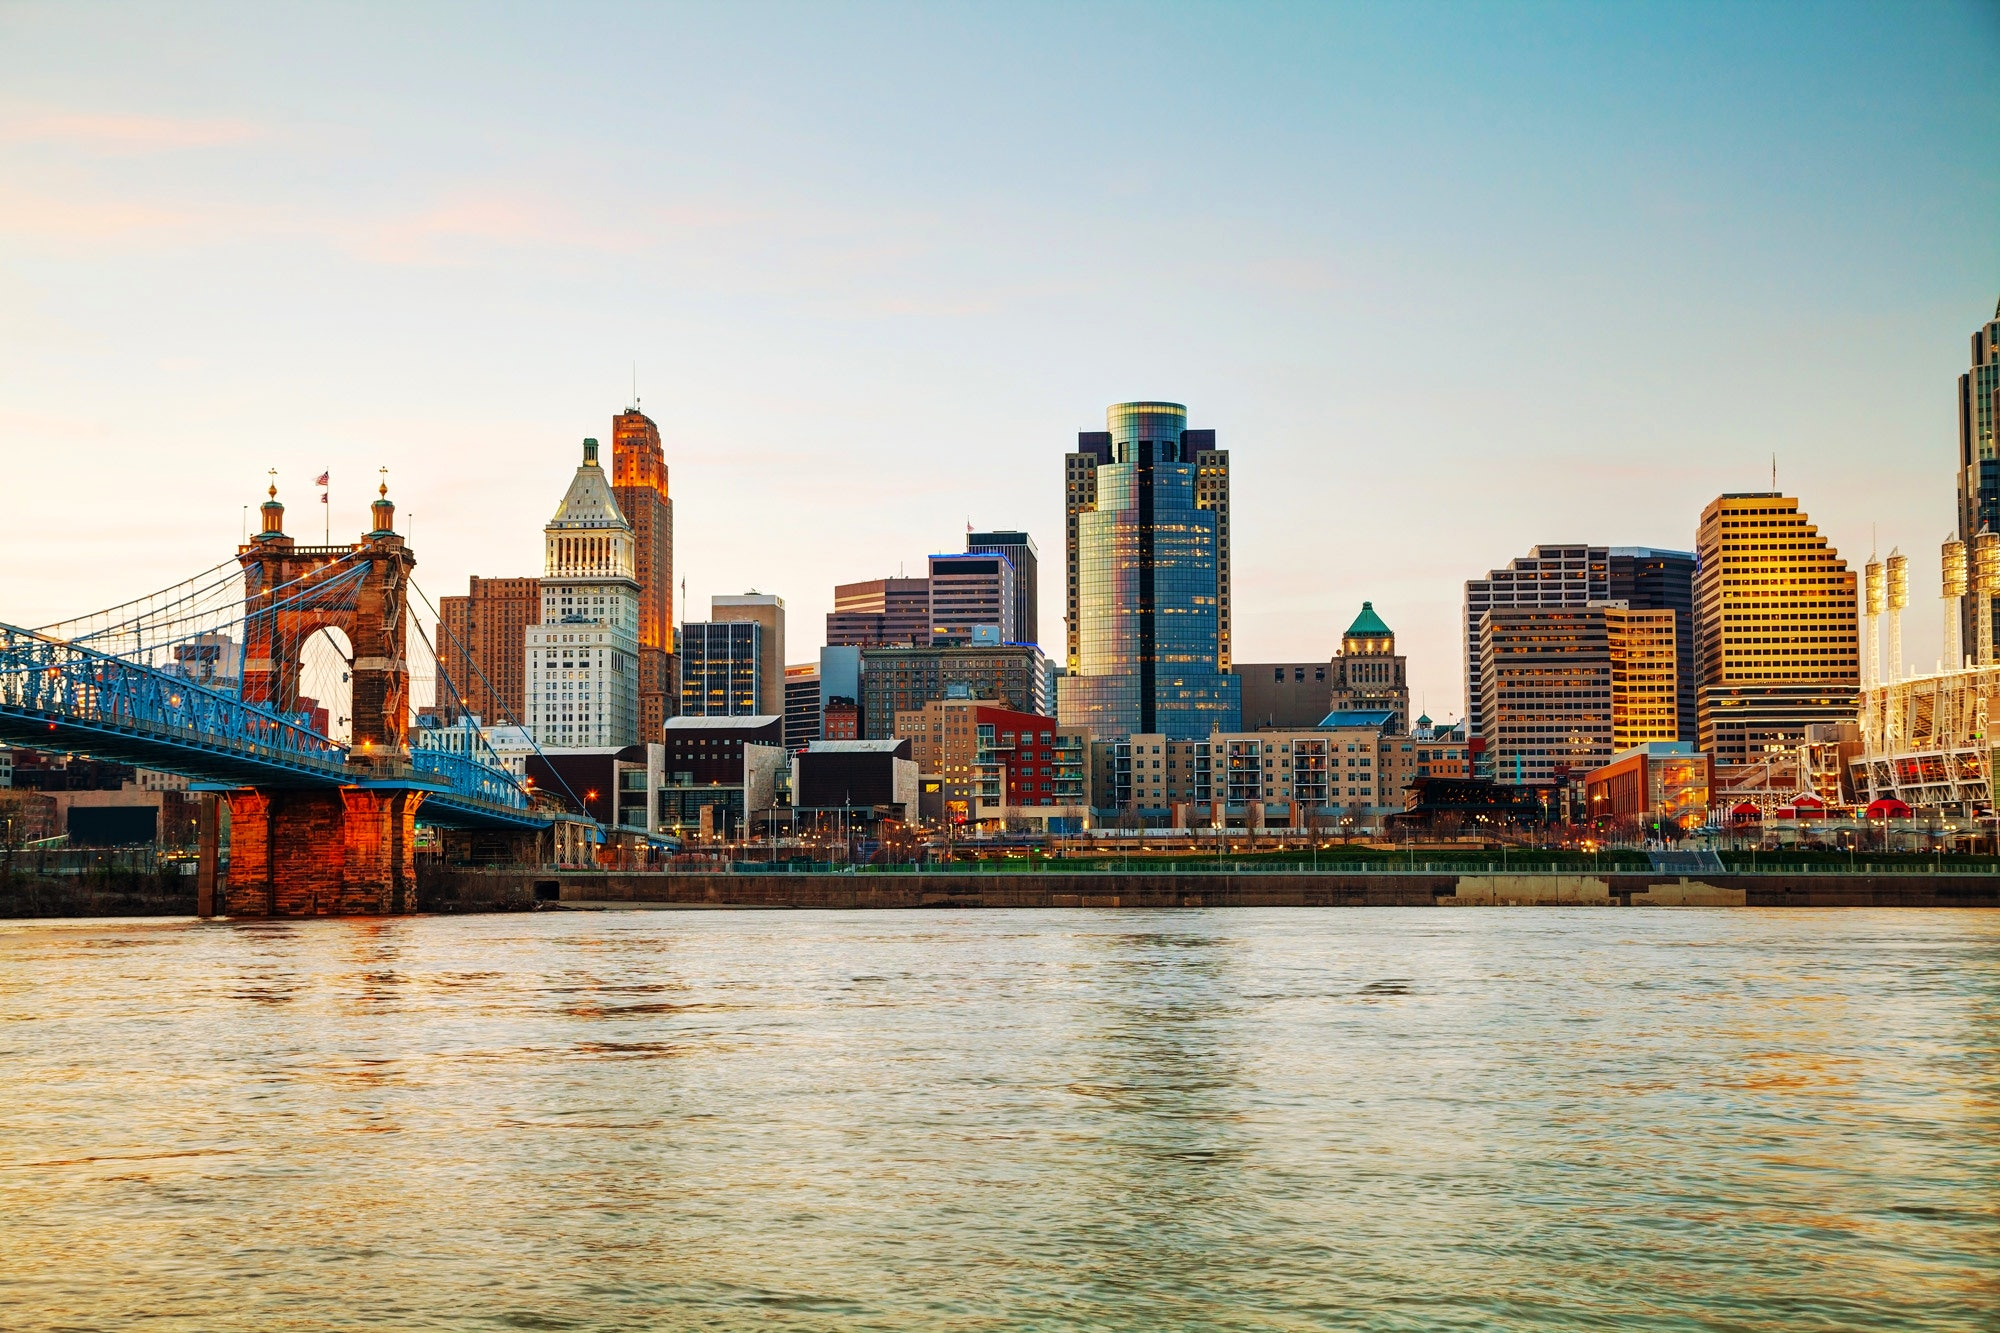 Dawn over downtown Cincinnati © photo.ua / Shutterstock